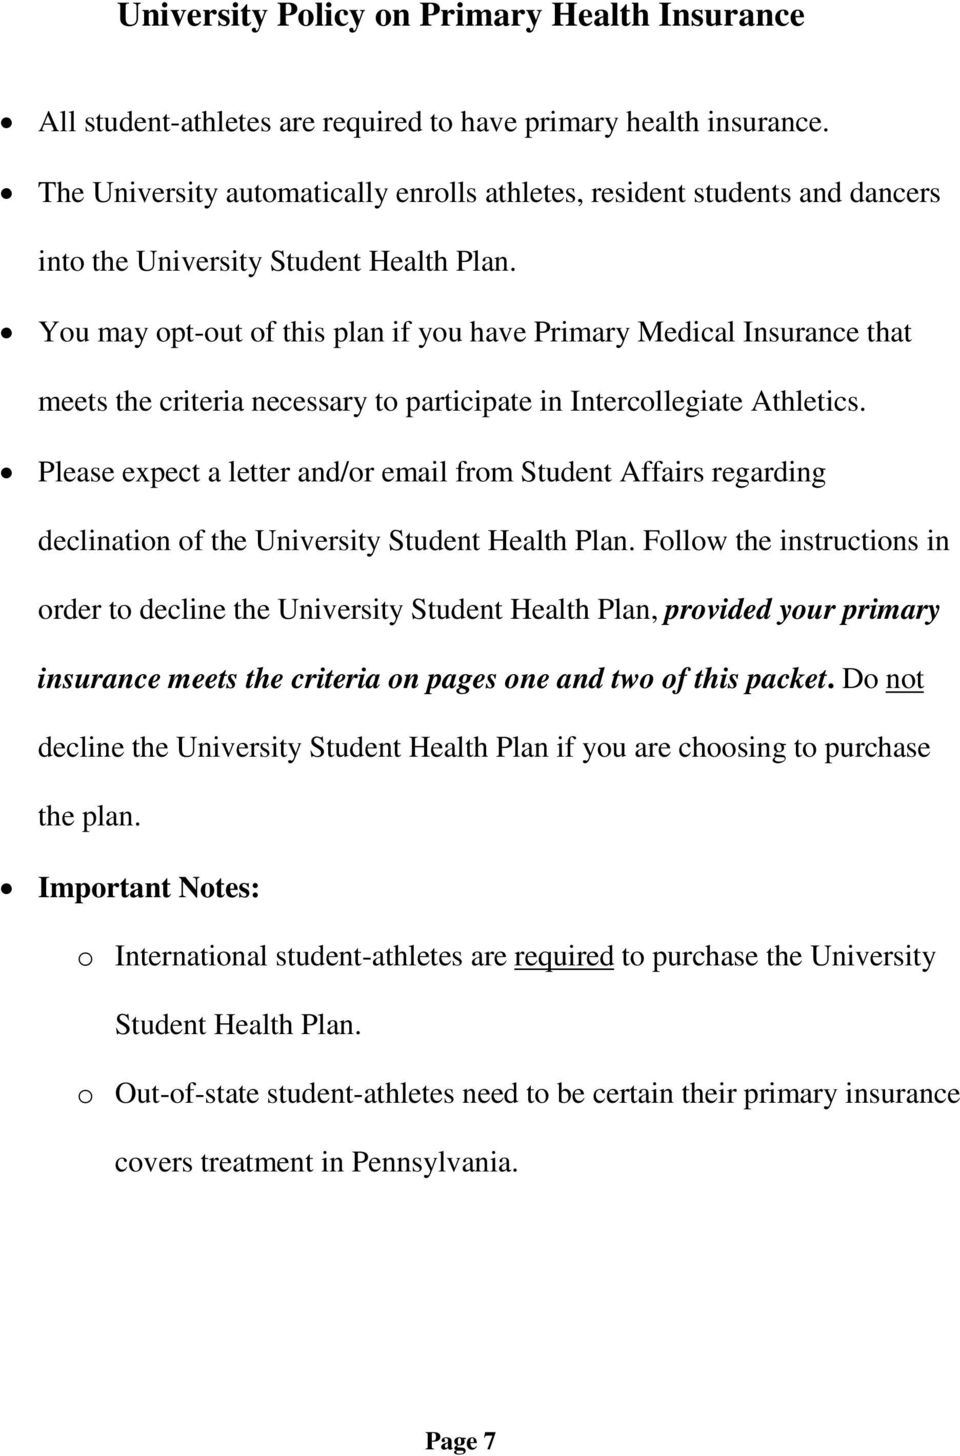 You may opt-out of this plan if you have Primary Medical Insurance that meets the criteria necessary to participate in Intercollegiate Athletics.